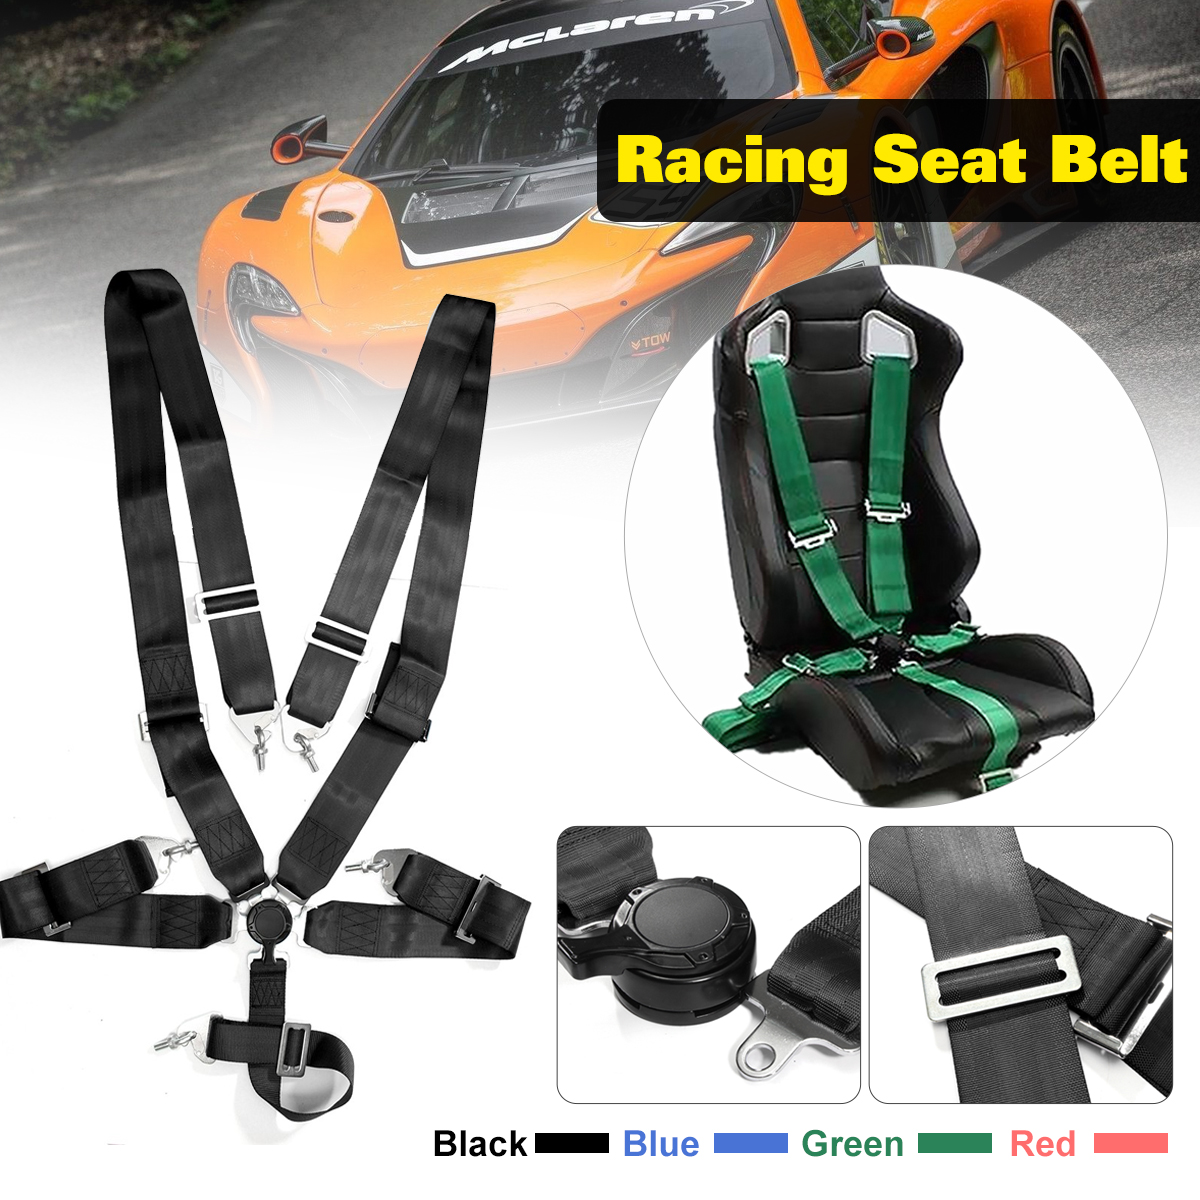 Racing Seat Belts New Sports Racing Safety Harness Seat Belt 3 5 Point Fixing Blue Quick Release Universal For All Racing Cars